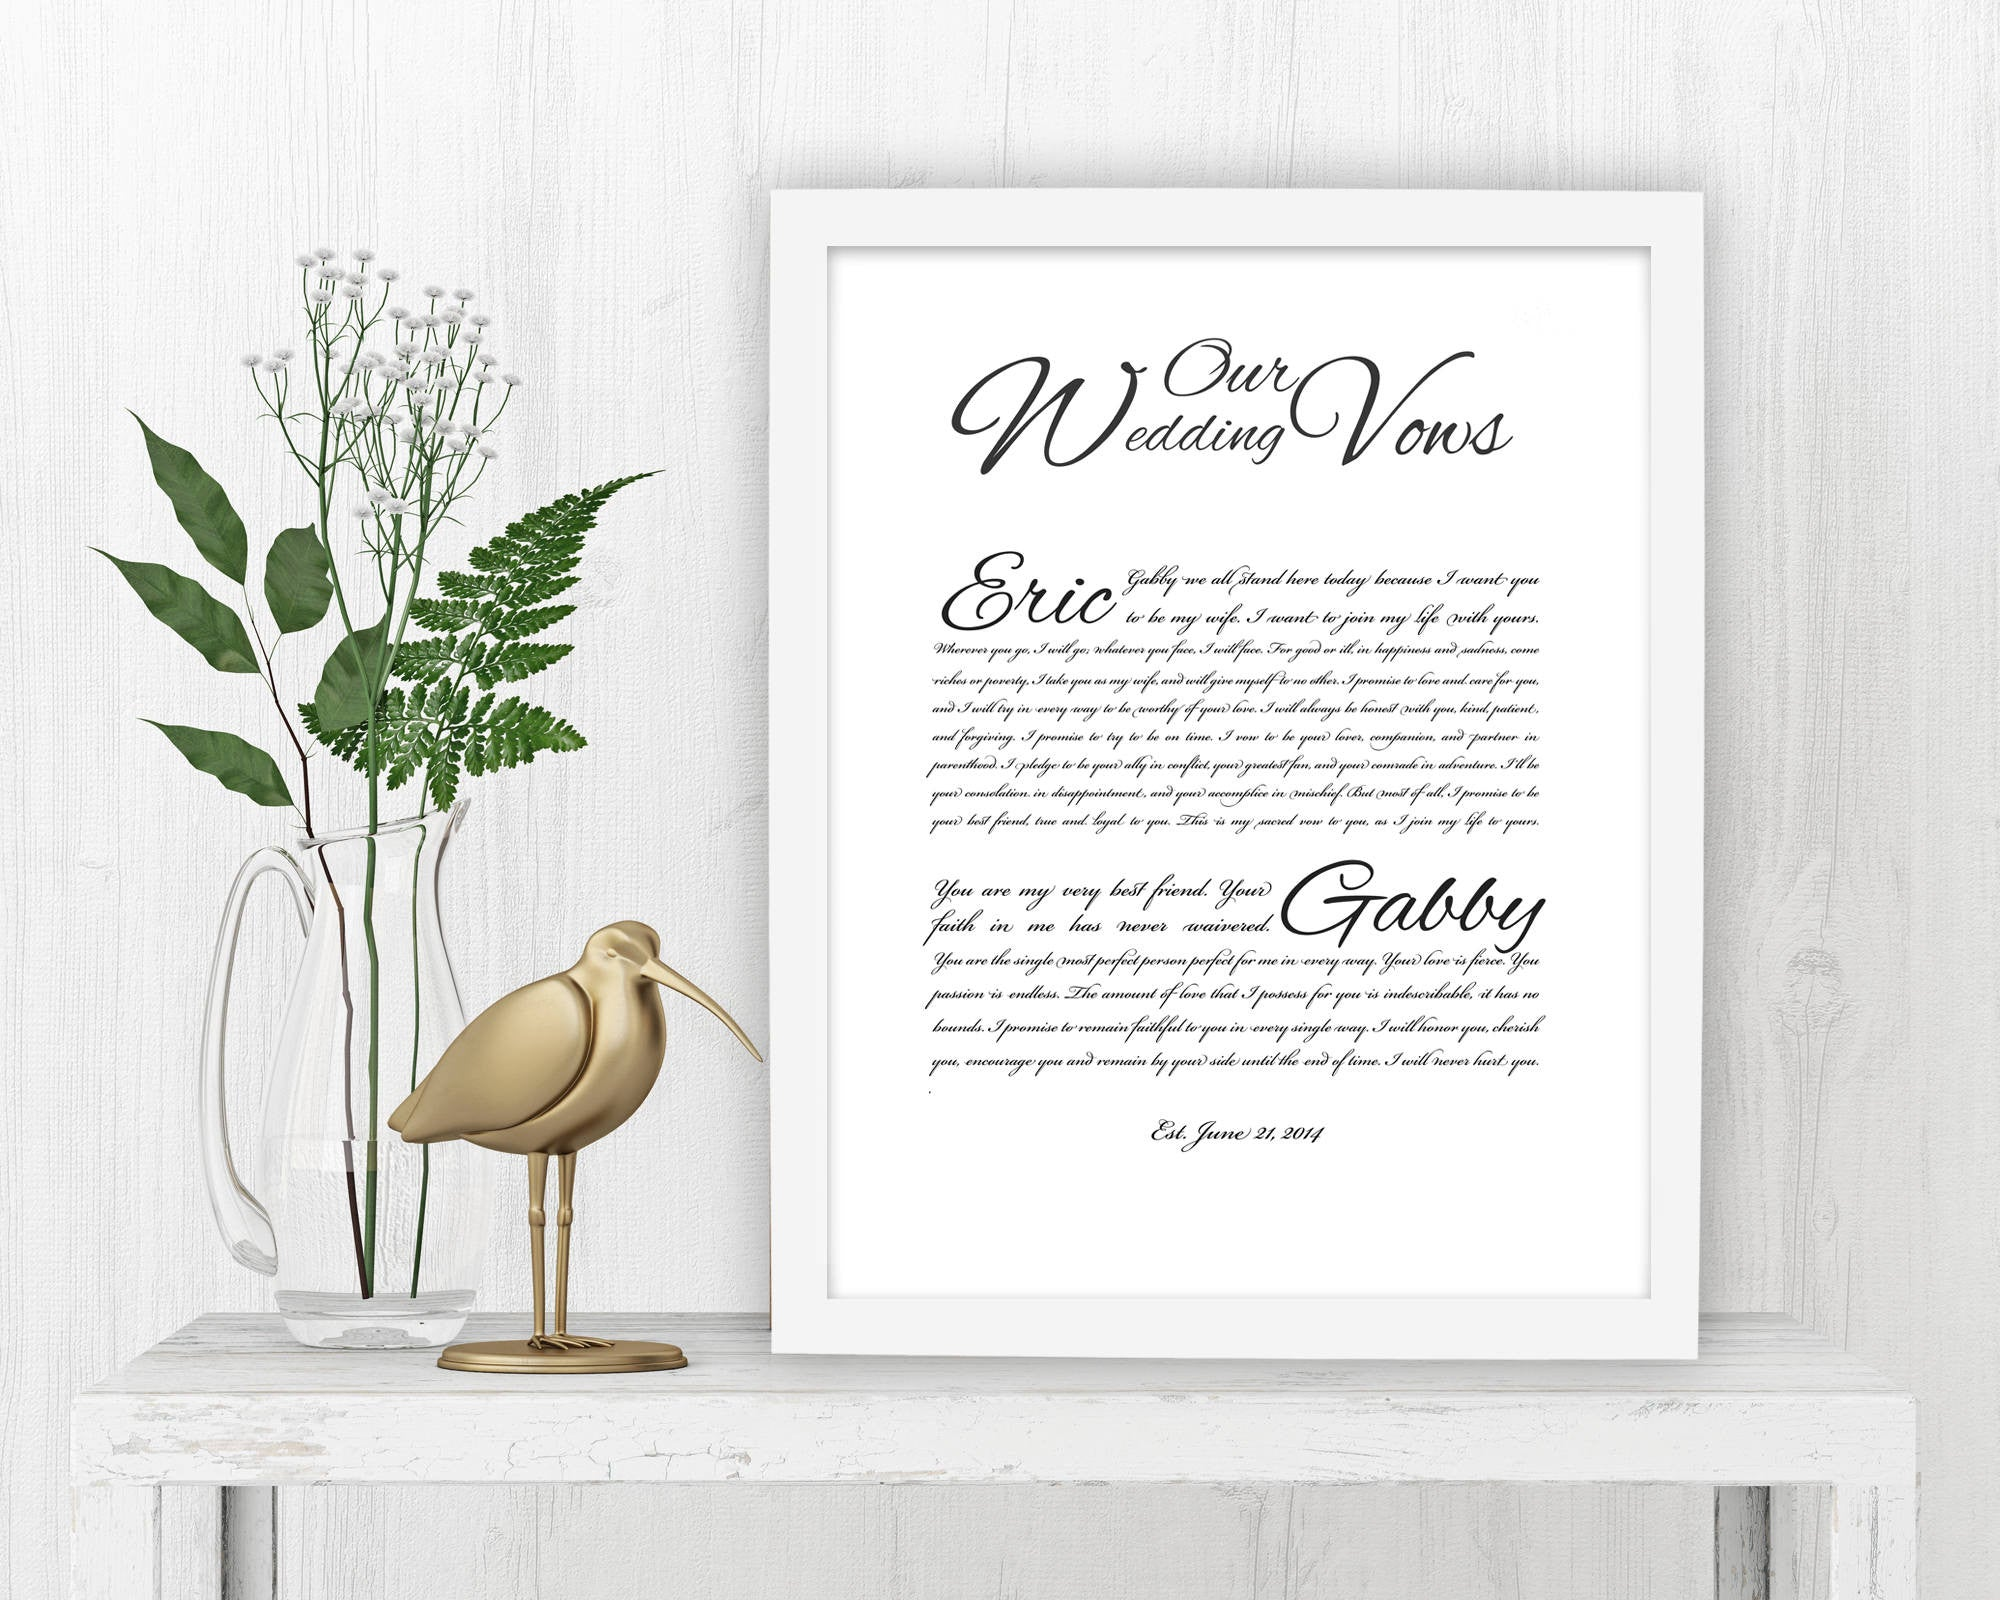 Wedding Vow Art: Snow White - Fine art and canvas personalized anniversary and inspirational gifts